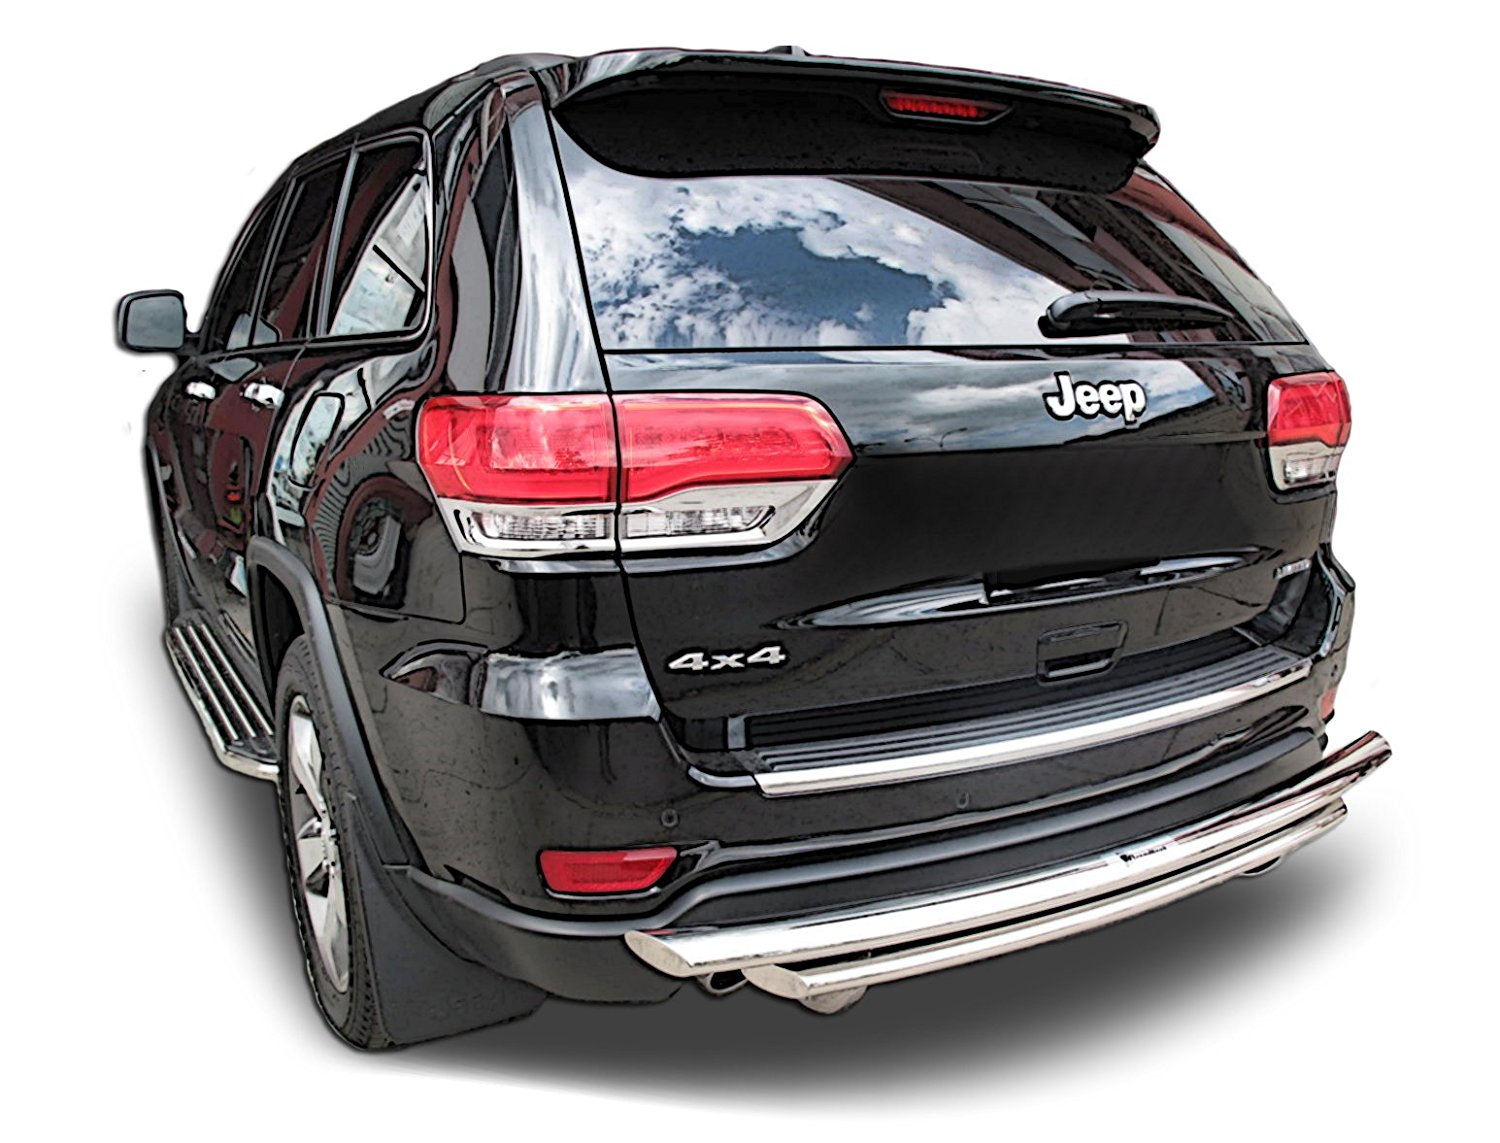 hight resolution of get quotations broadfeet rear bumper guard for jeep grand cherokee 2011 to 2016 stainless steel double